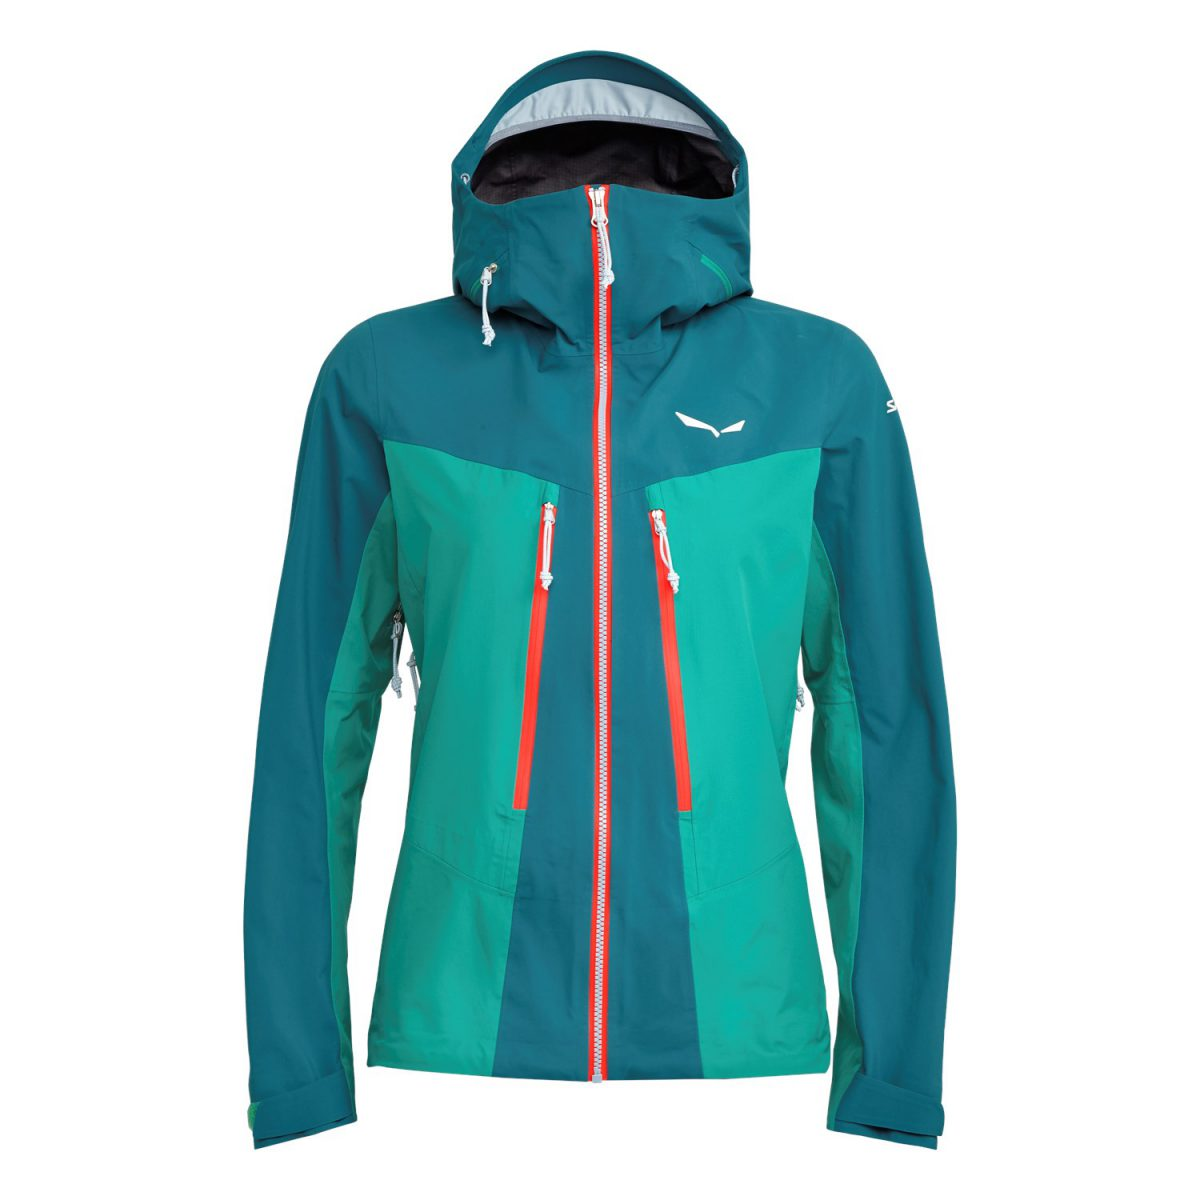 ORTLES 3 GORE-TEX PRO waterproof for woman blue for mountaineering